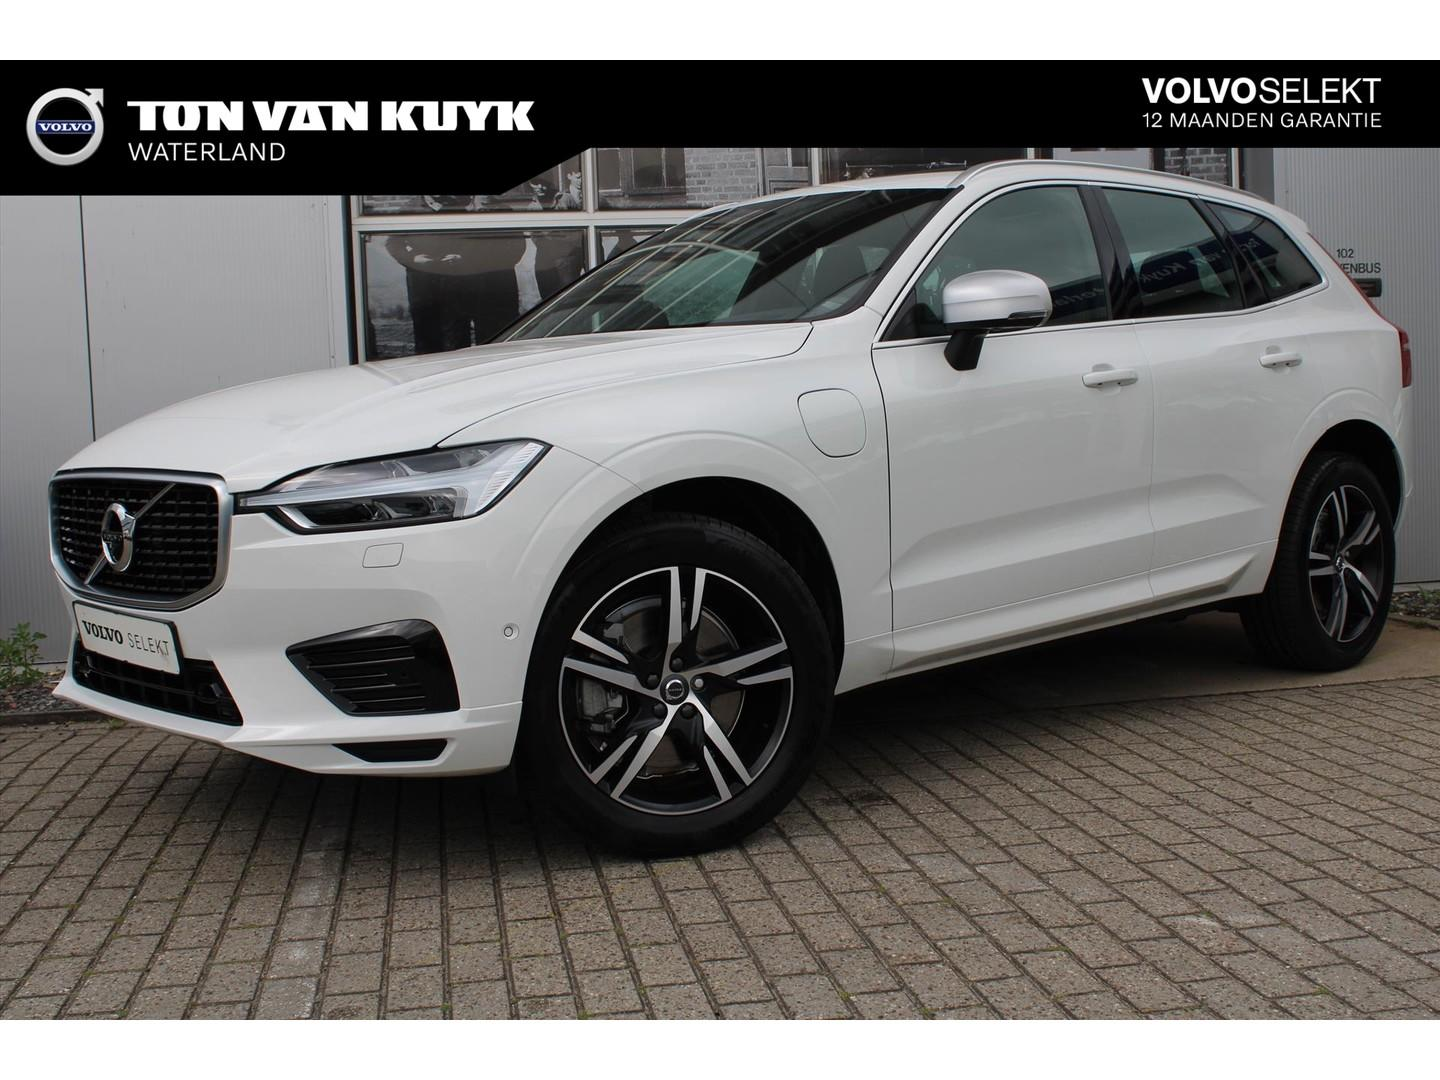 Volvo Xc60 T8 twin engine geartronic awd r-design / business pack connect